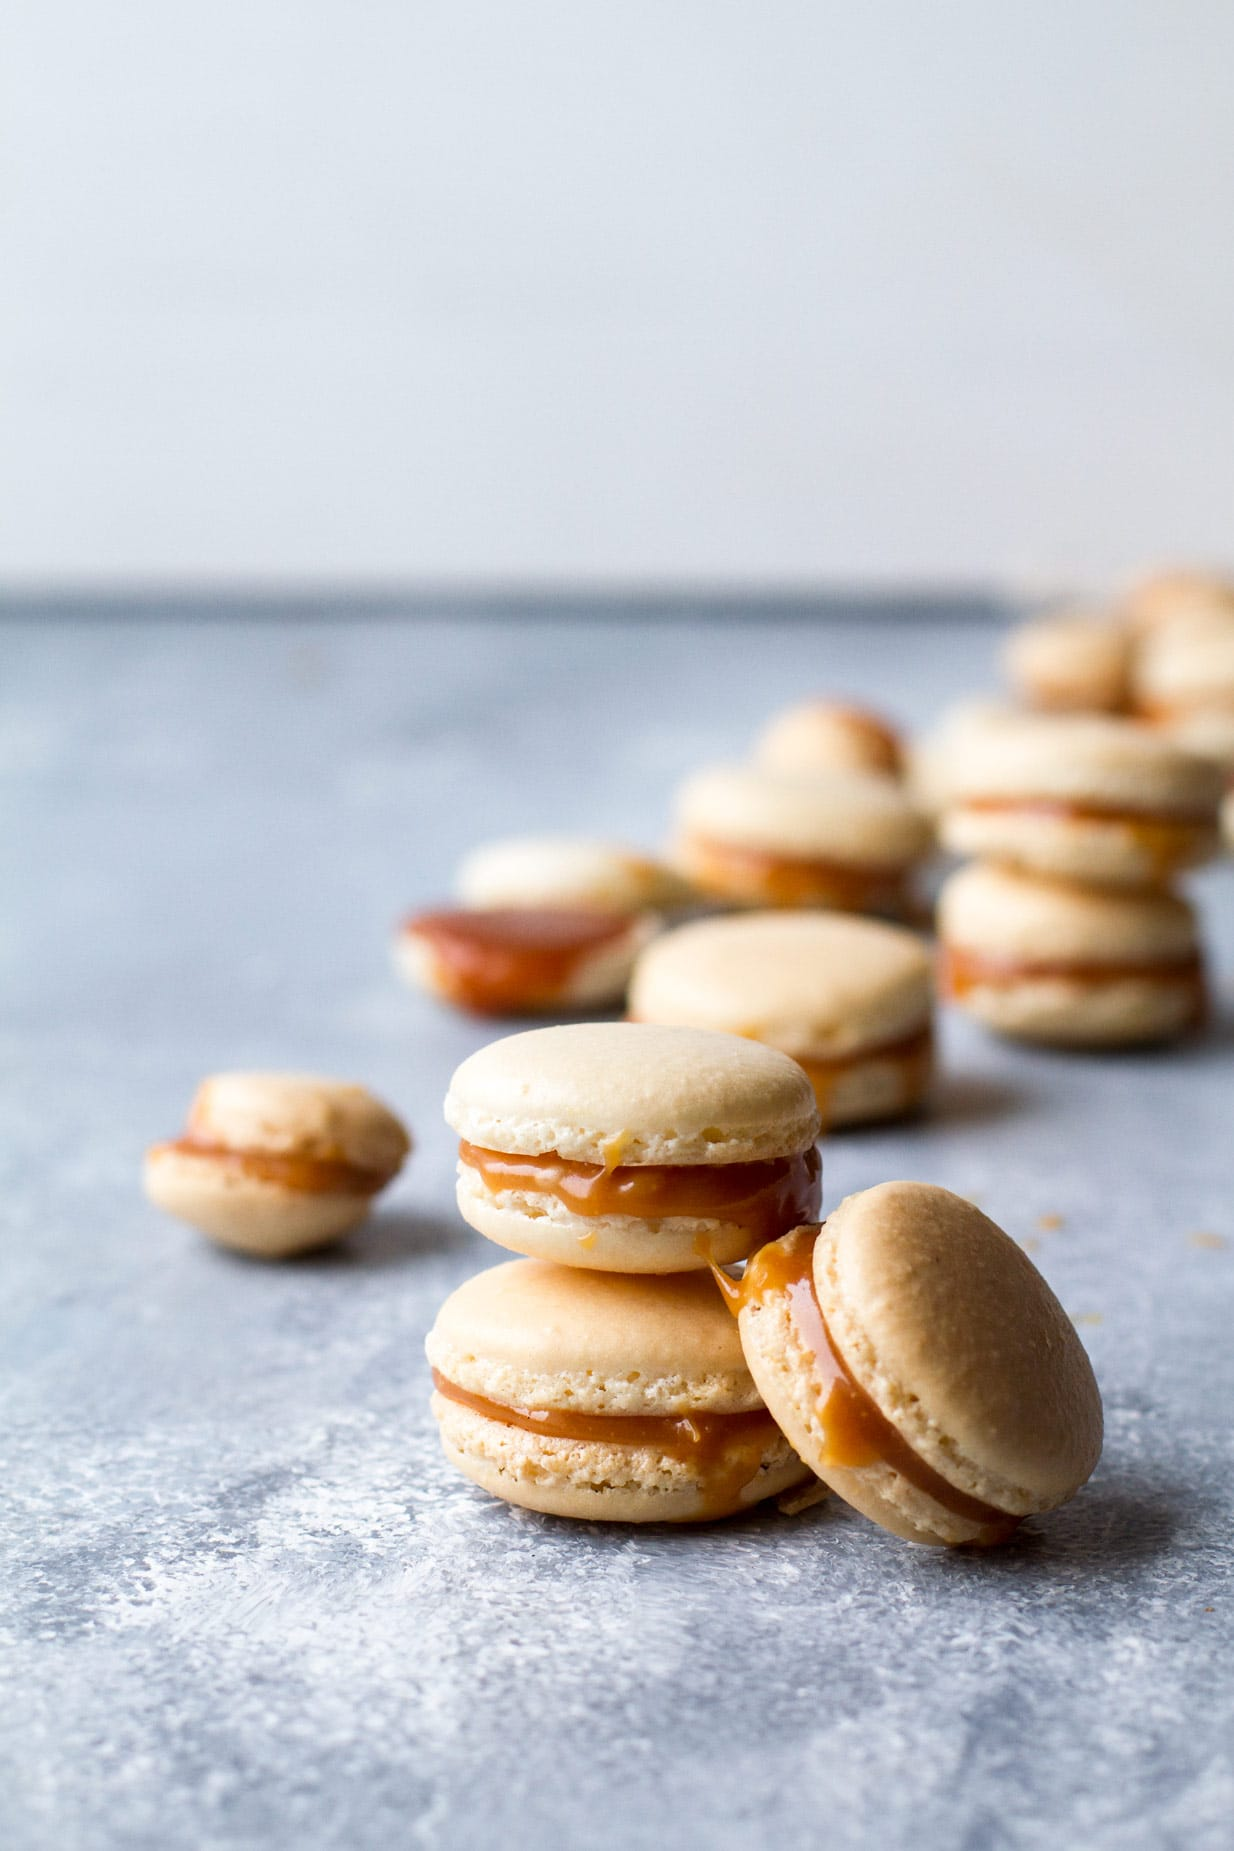 Salted Caramel Macarons with Homemade Caramel